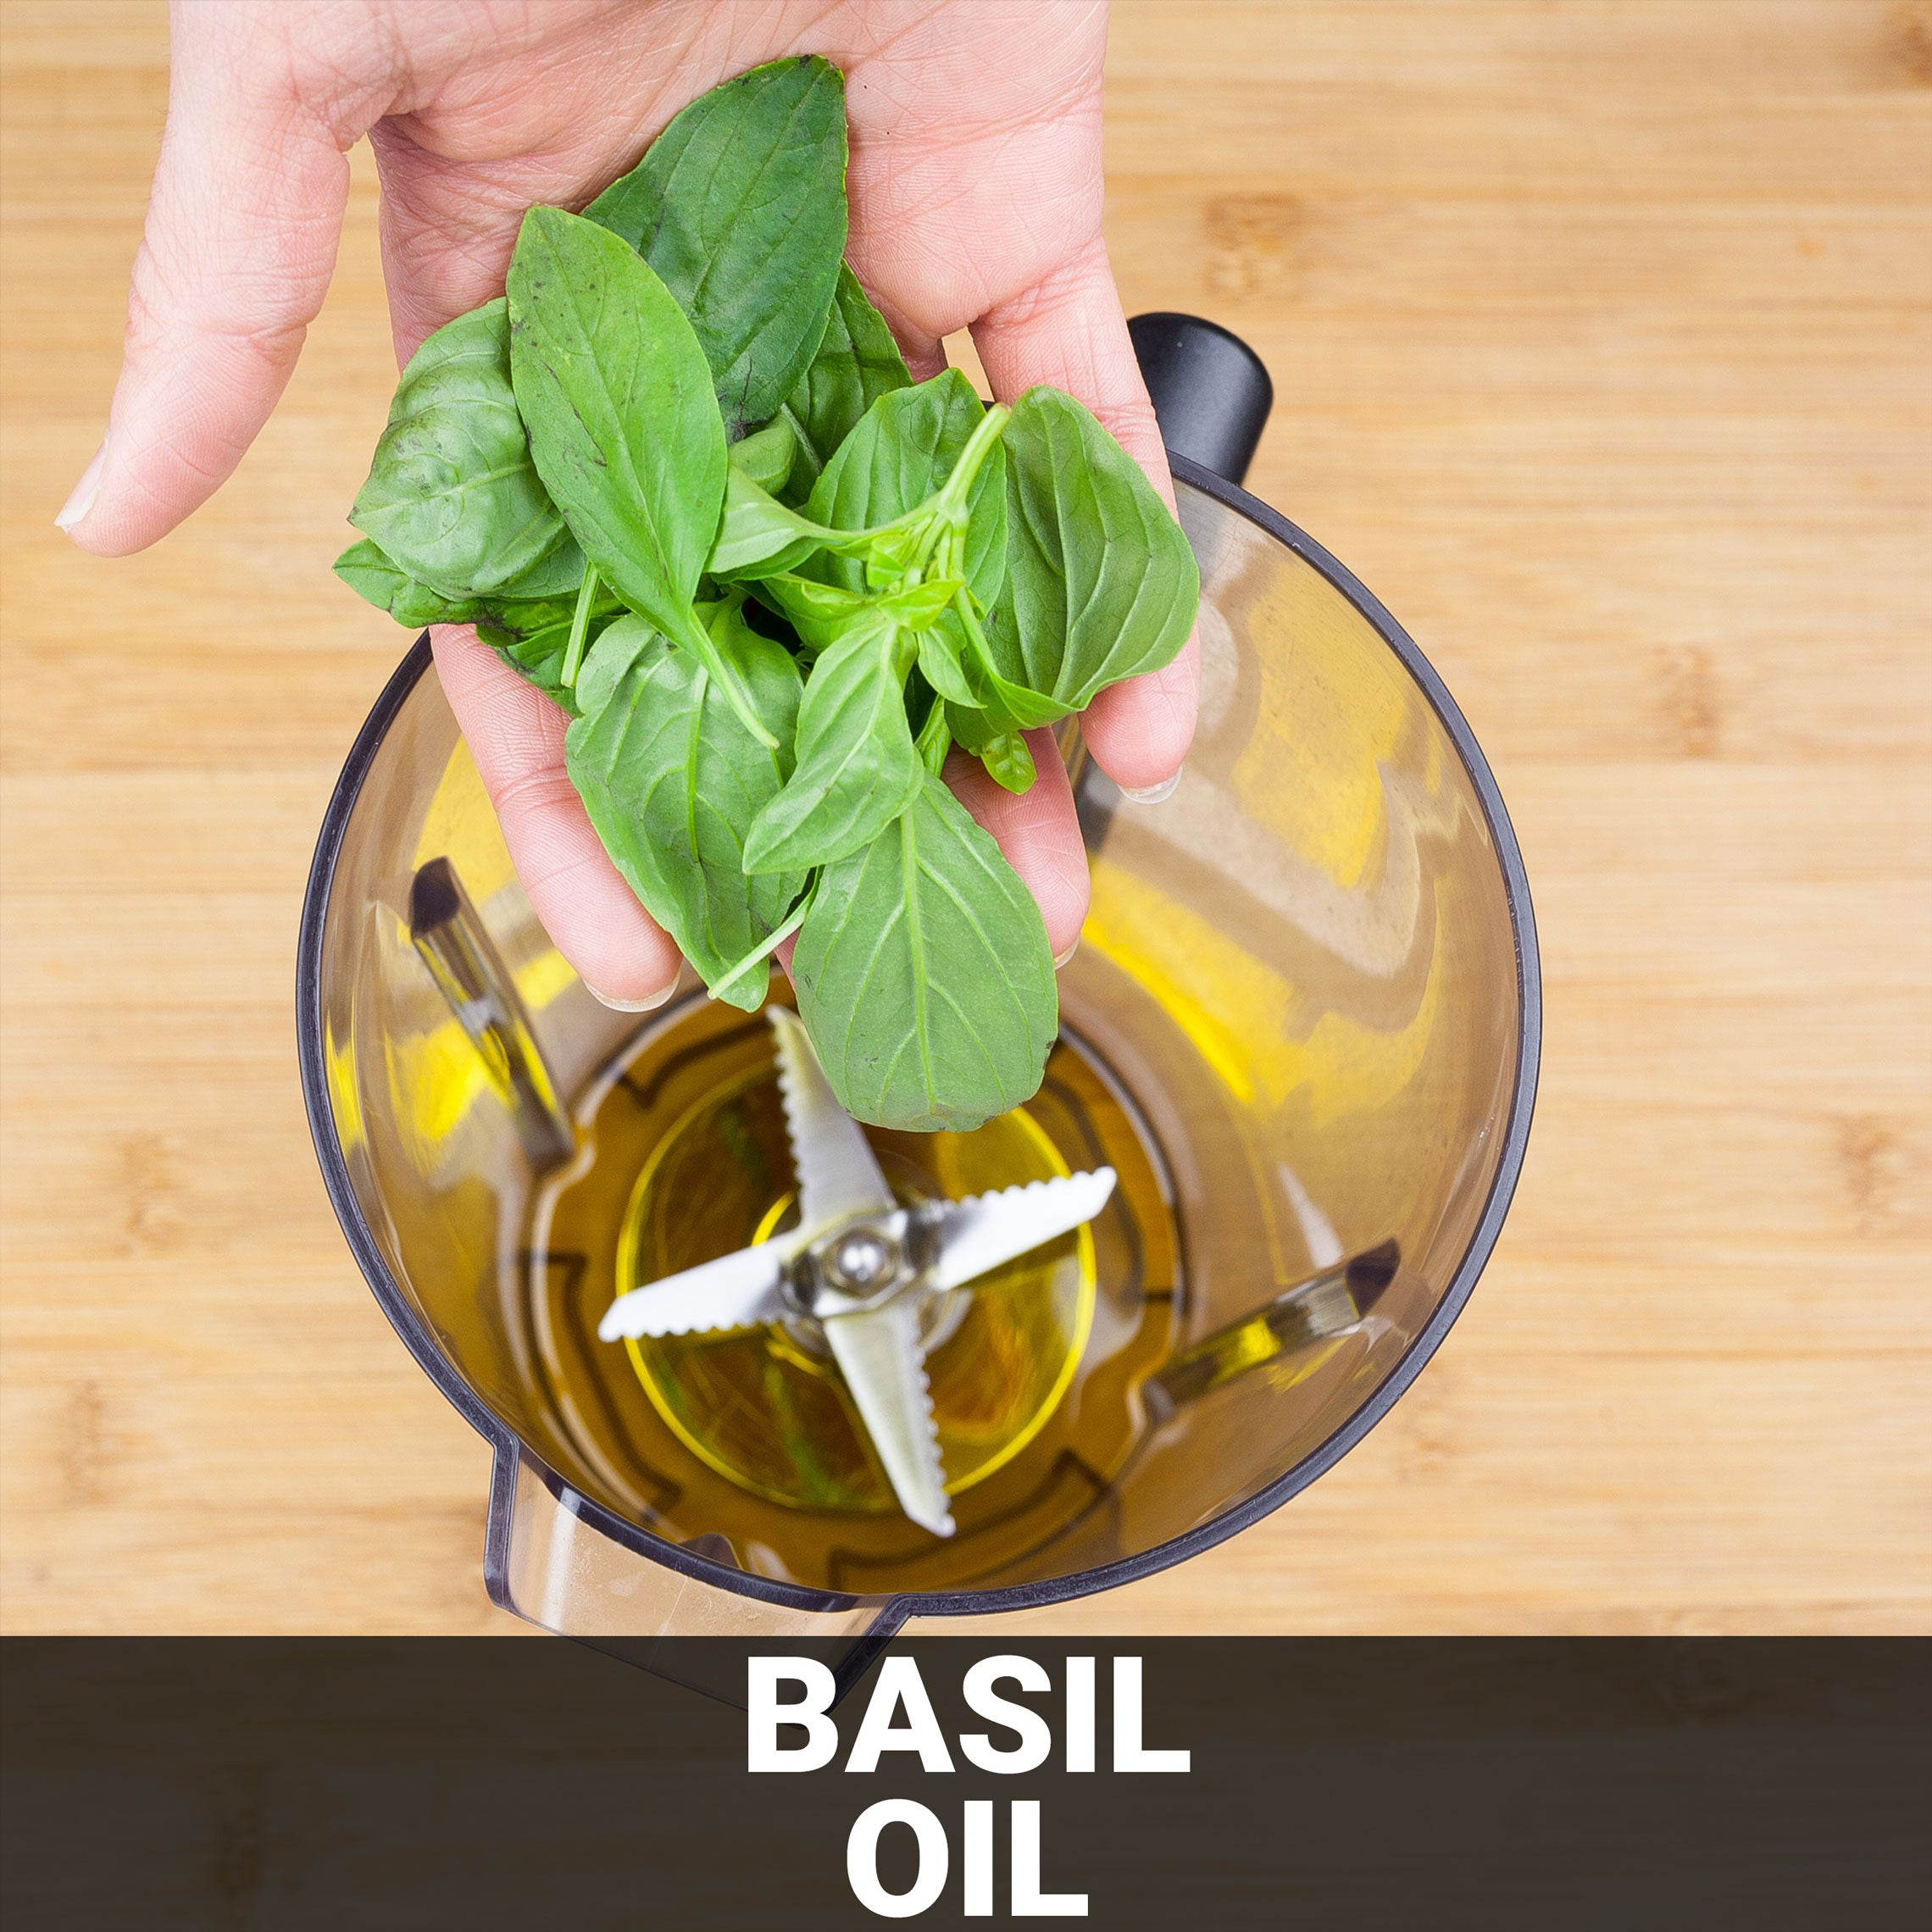 Basil Oil Recipe - Foods Alive